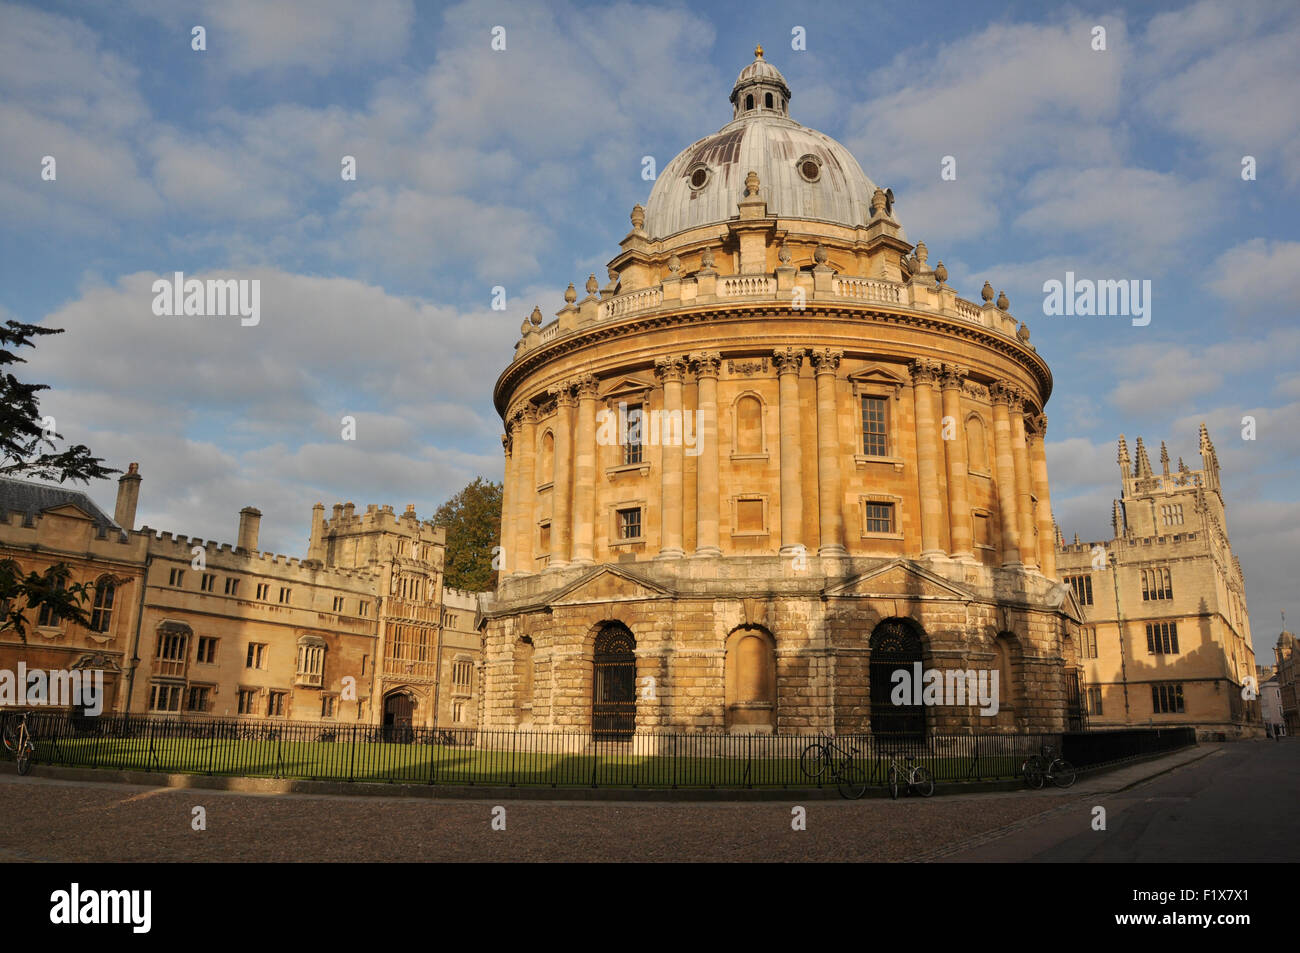 Radcliffe Camera, Oxford University, United Kingdom Stock Photo